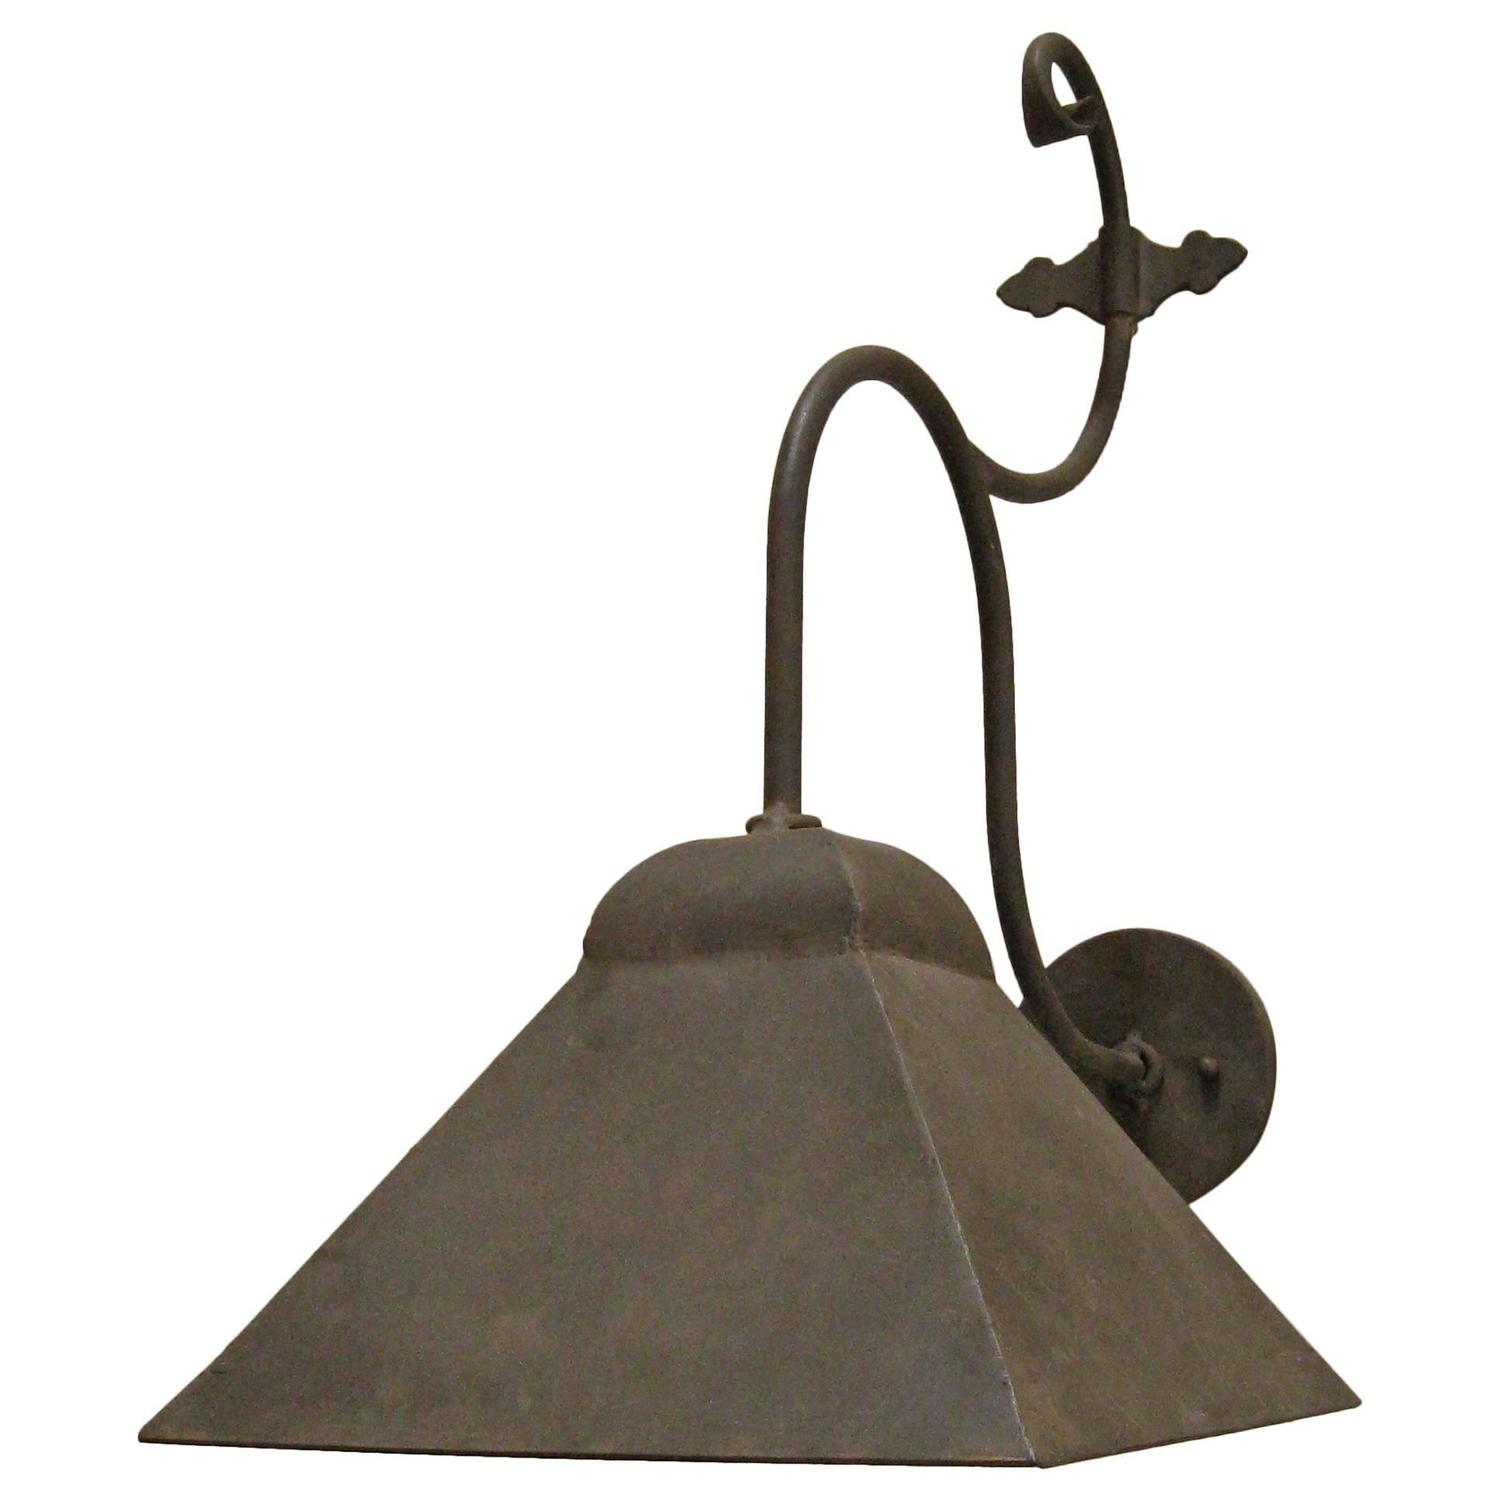 Iron Exterior Hooded Wall Sconce For Sale at 1stdibs